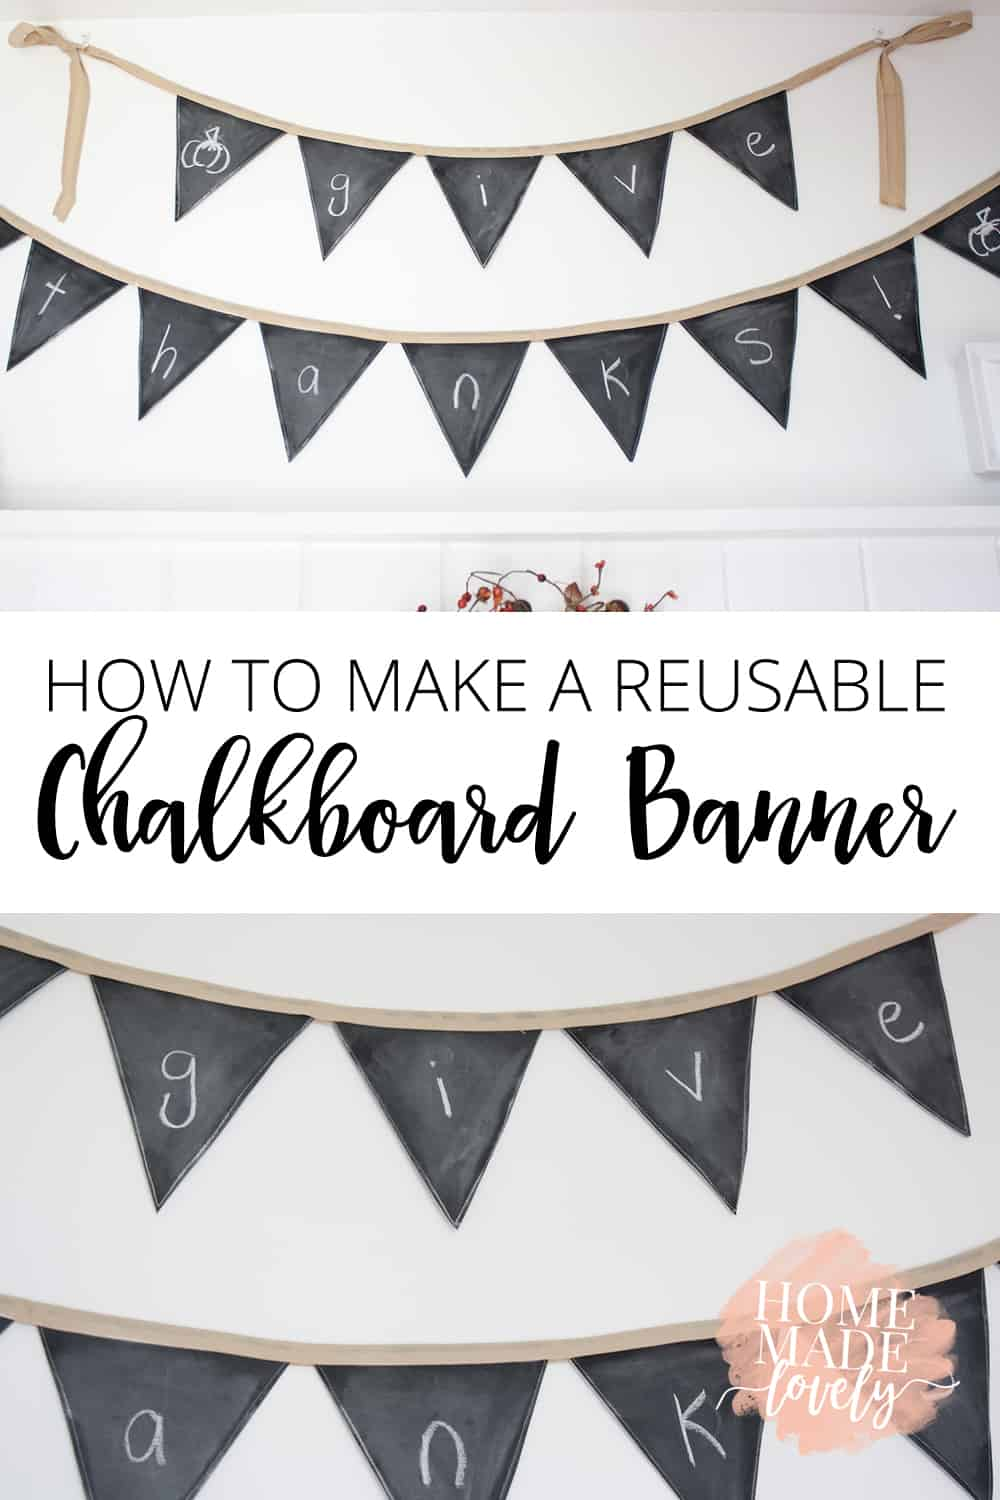 how to make a reusable chalkboard banner pin